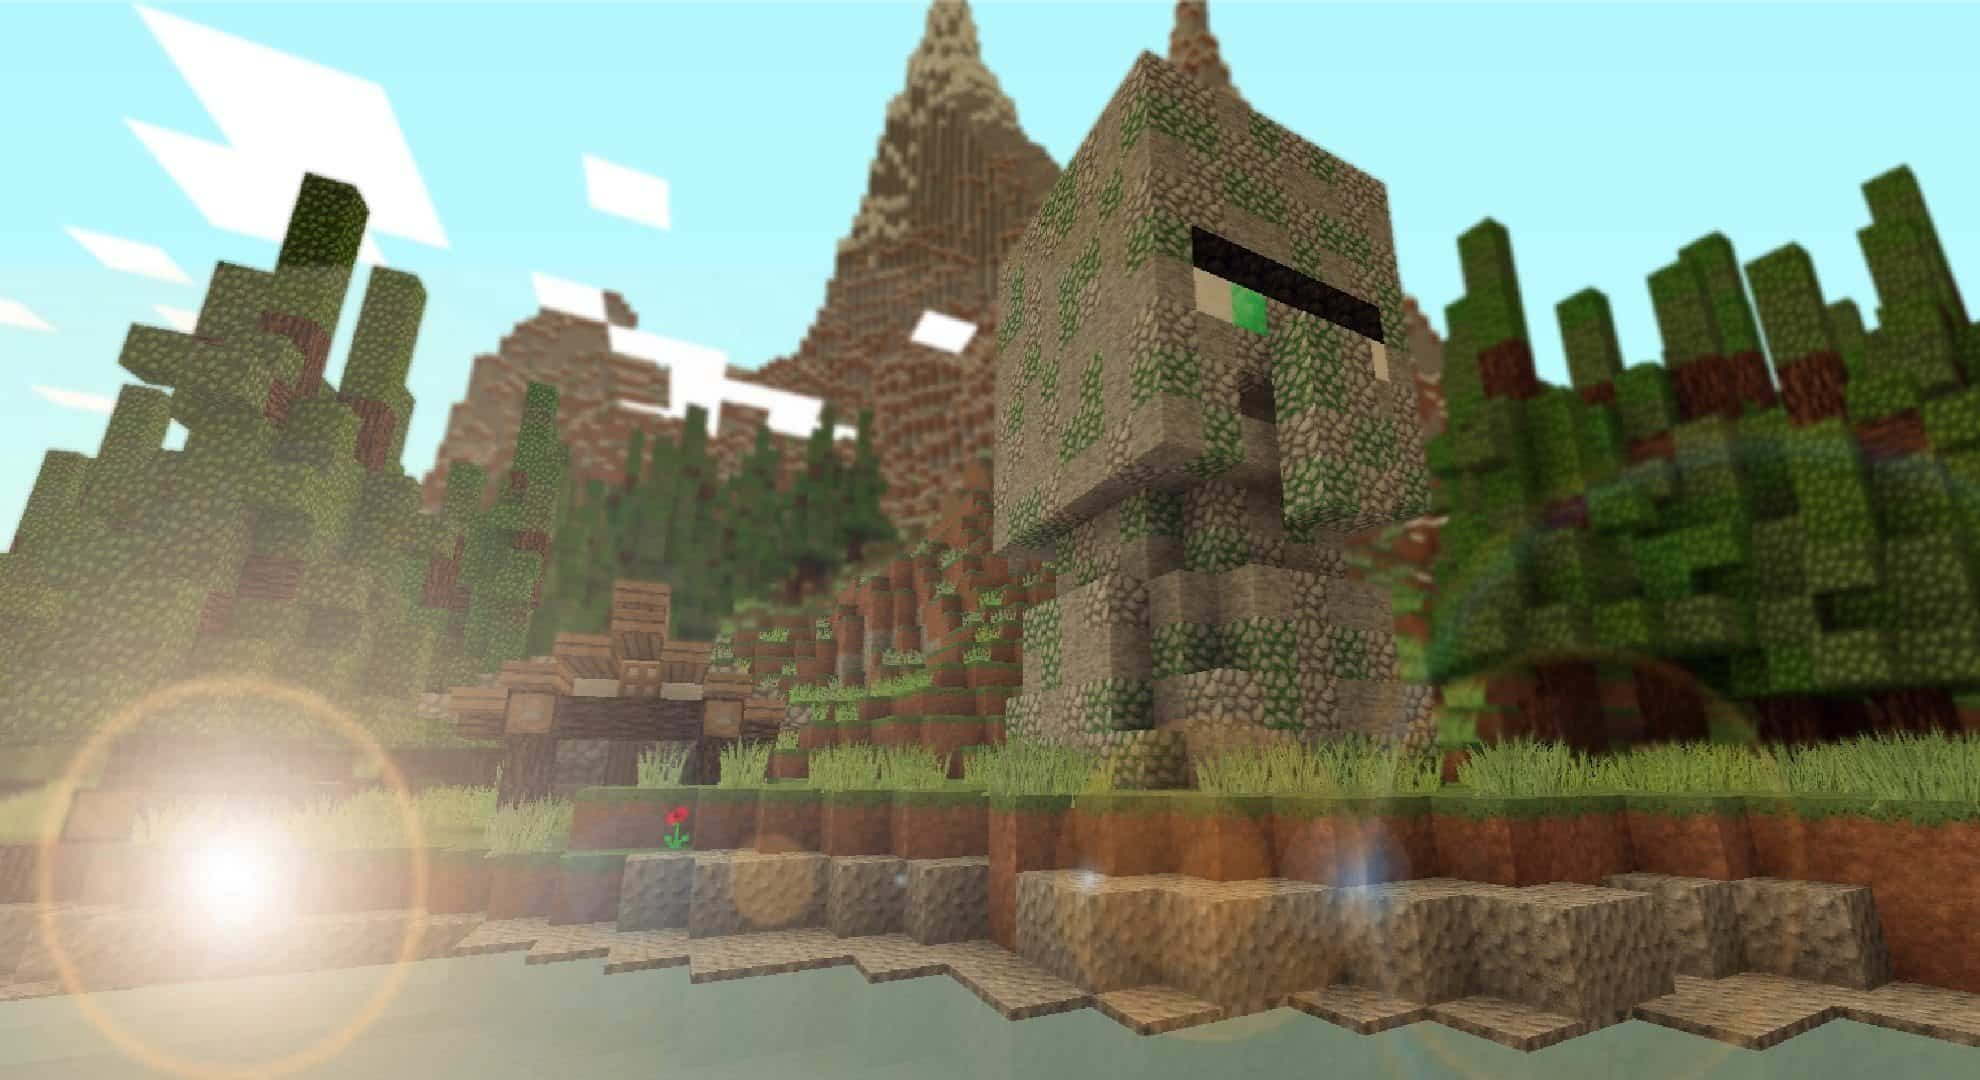 wallpaper_paques___minecraftfrance_by_woutin-d8oitie